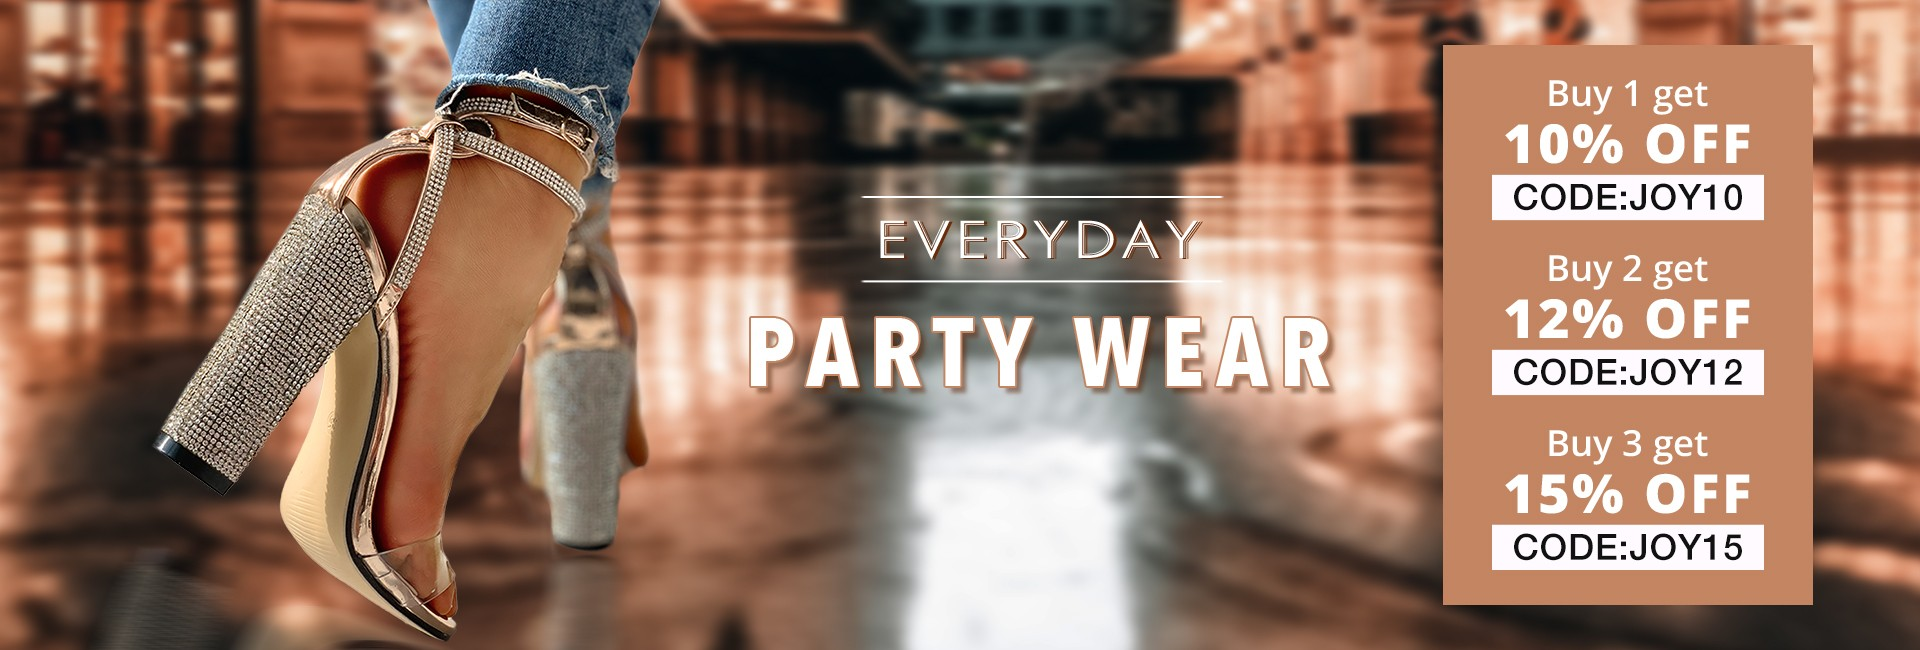 Everyday party wear